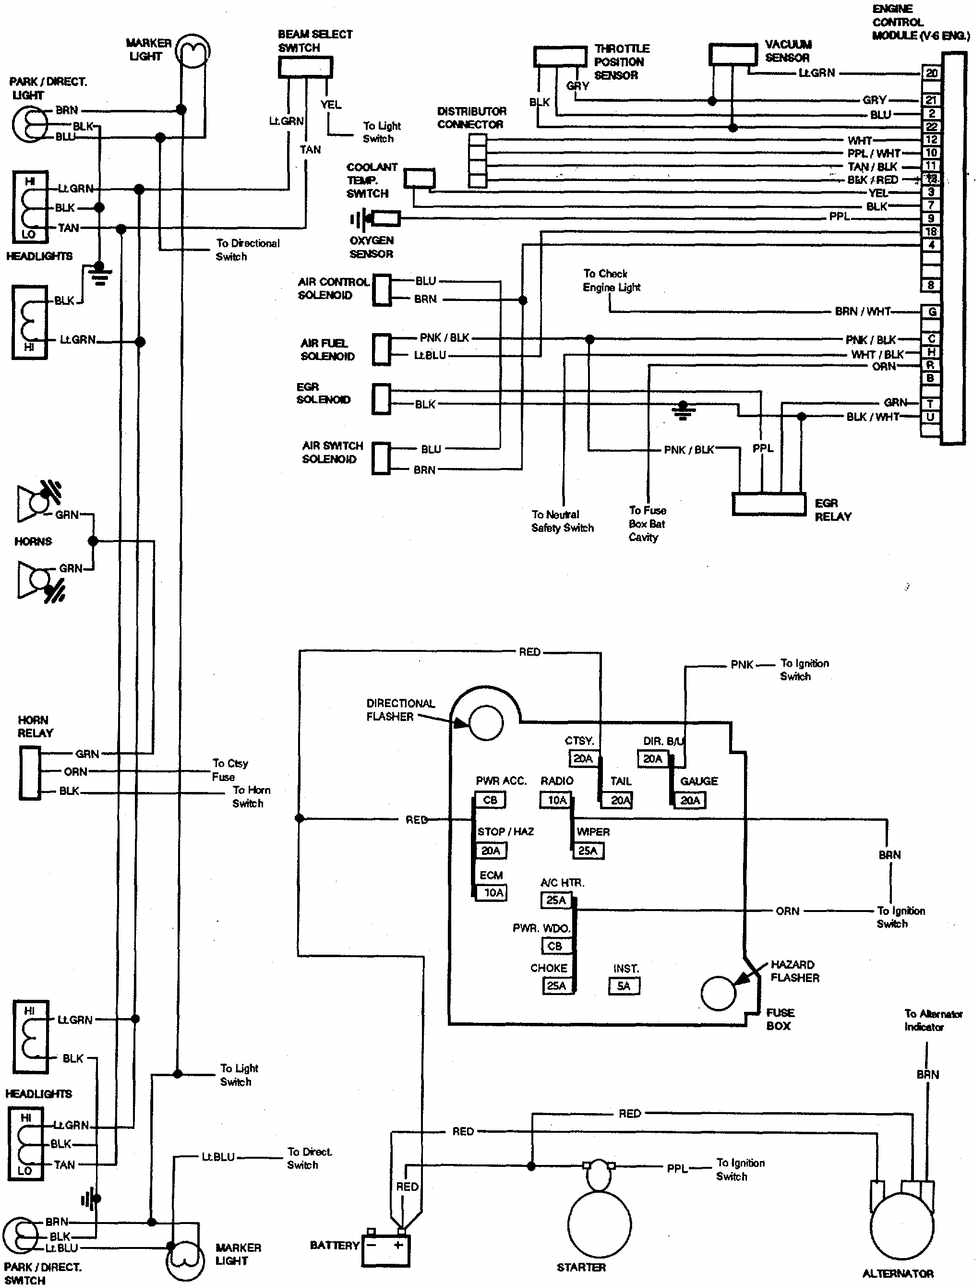 1990 Chevy 2500 4wd Wiring Diagram Schematics Diagrams Chevrolet Colorado Truck Stereo V8 Trucks 1981 1987 Electrical 2009 Radio